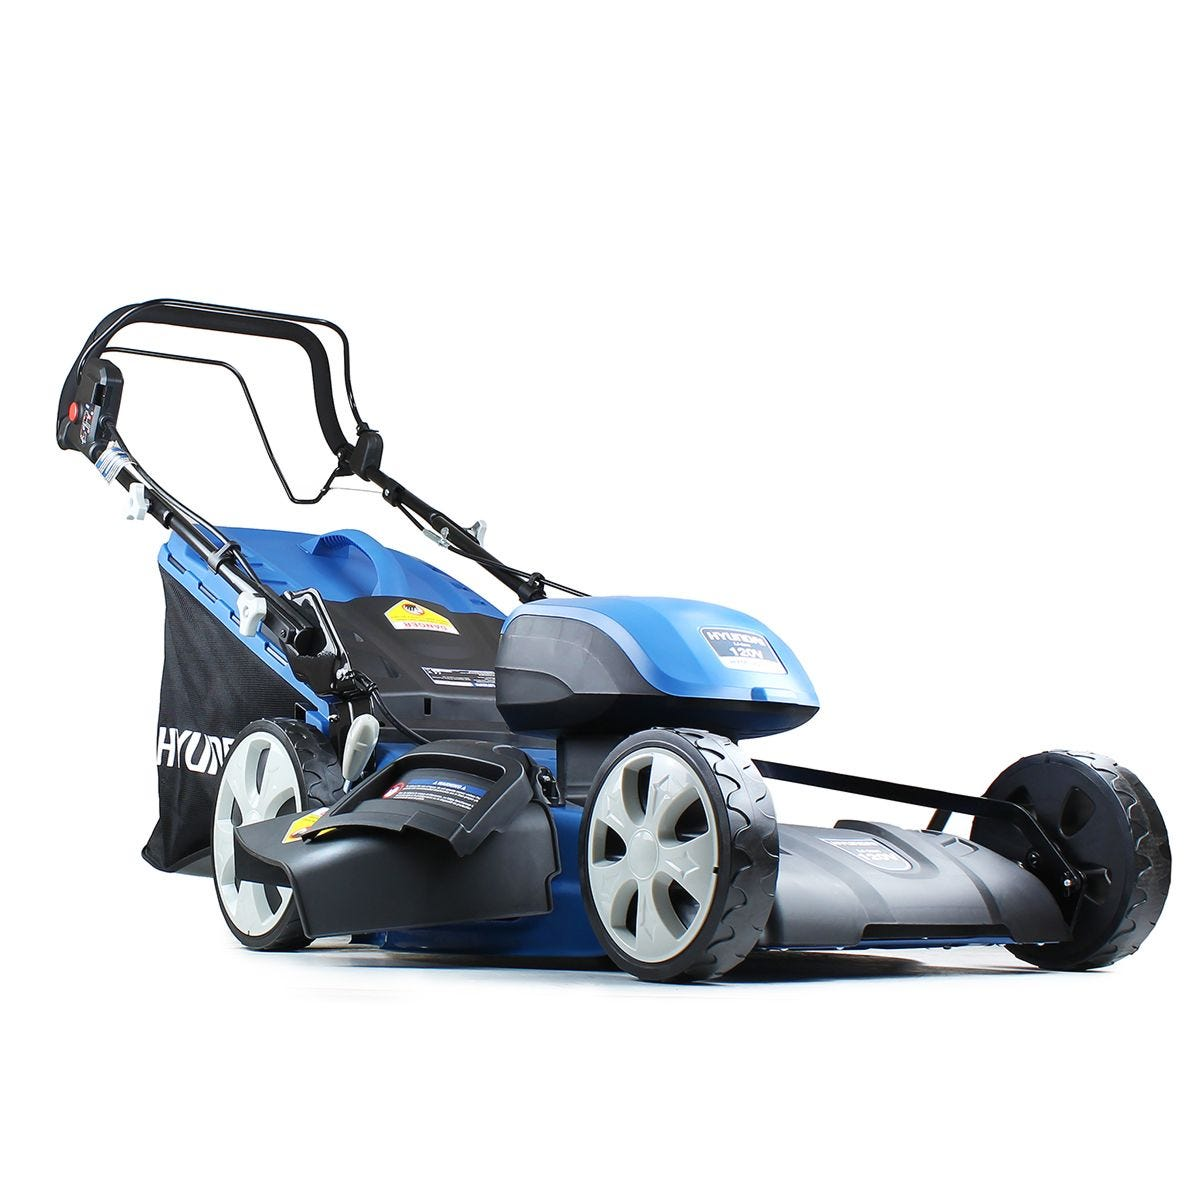 Hyundai HYM120Li510 Cordless Lawnmower Battery Powered Self Propelled 51cm Cutting Width with 120v Lithium-ion Battery and Charger